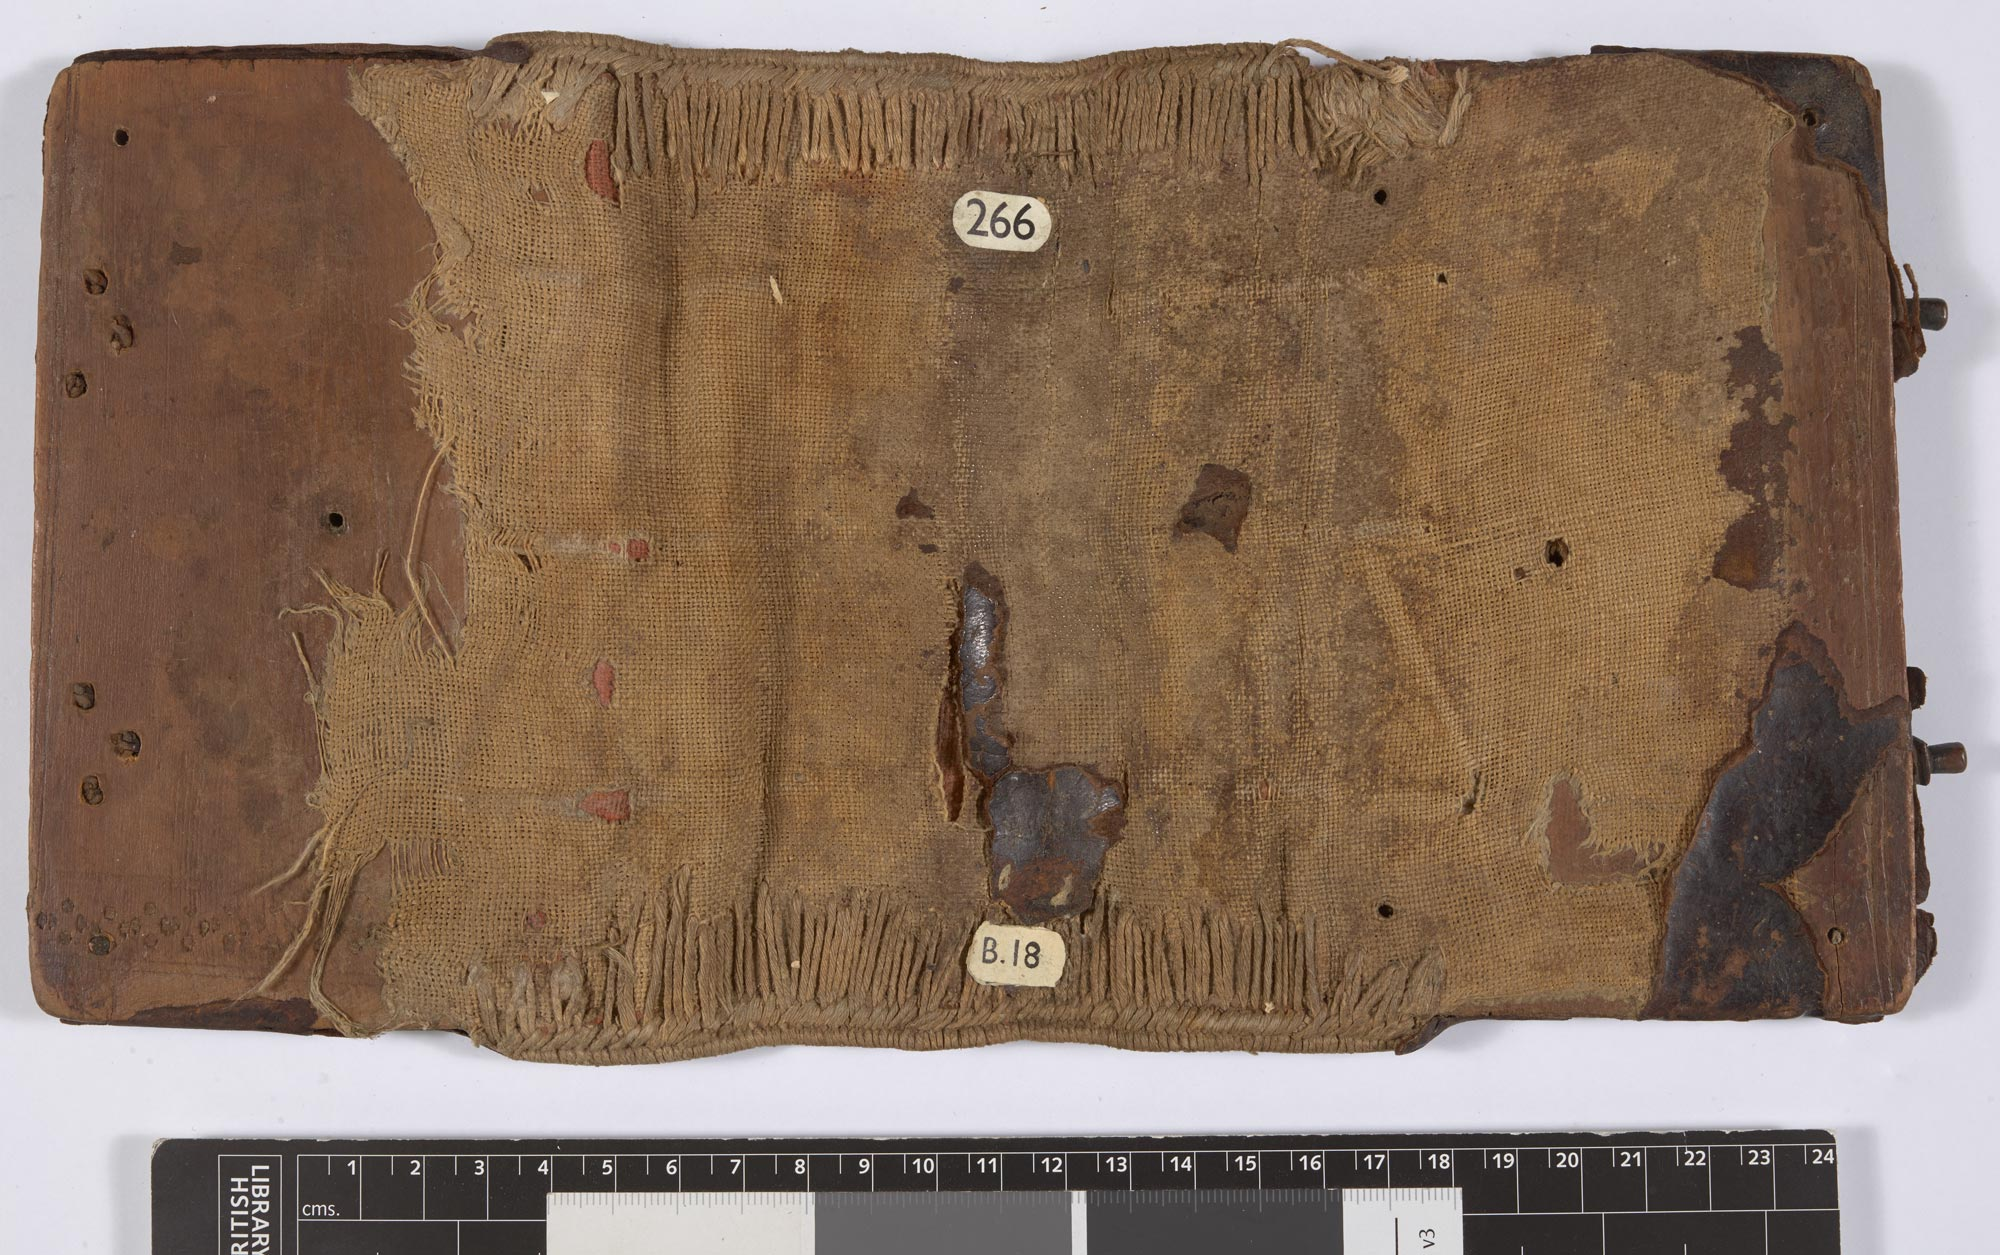 Detached Byzantine binding (Add MS 28821/1 fblef)